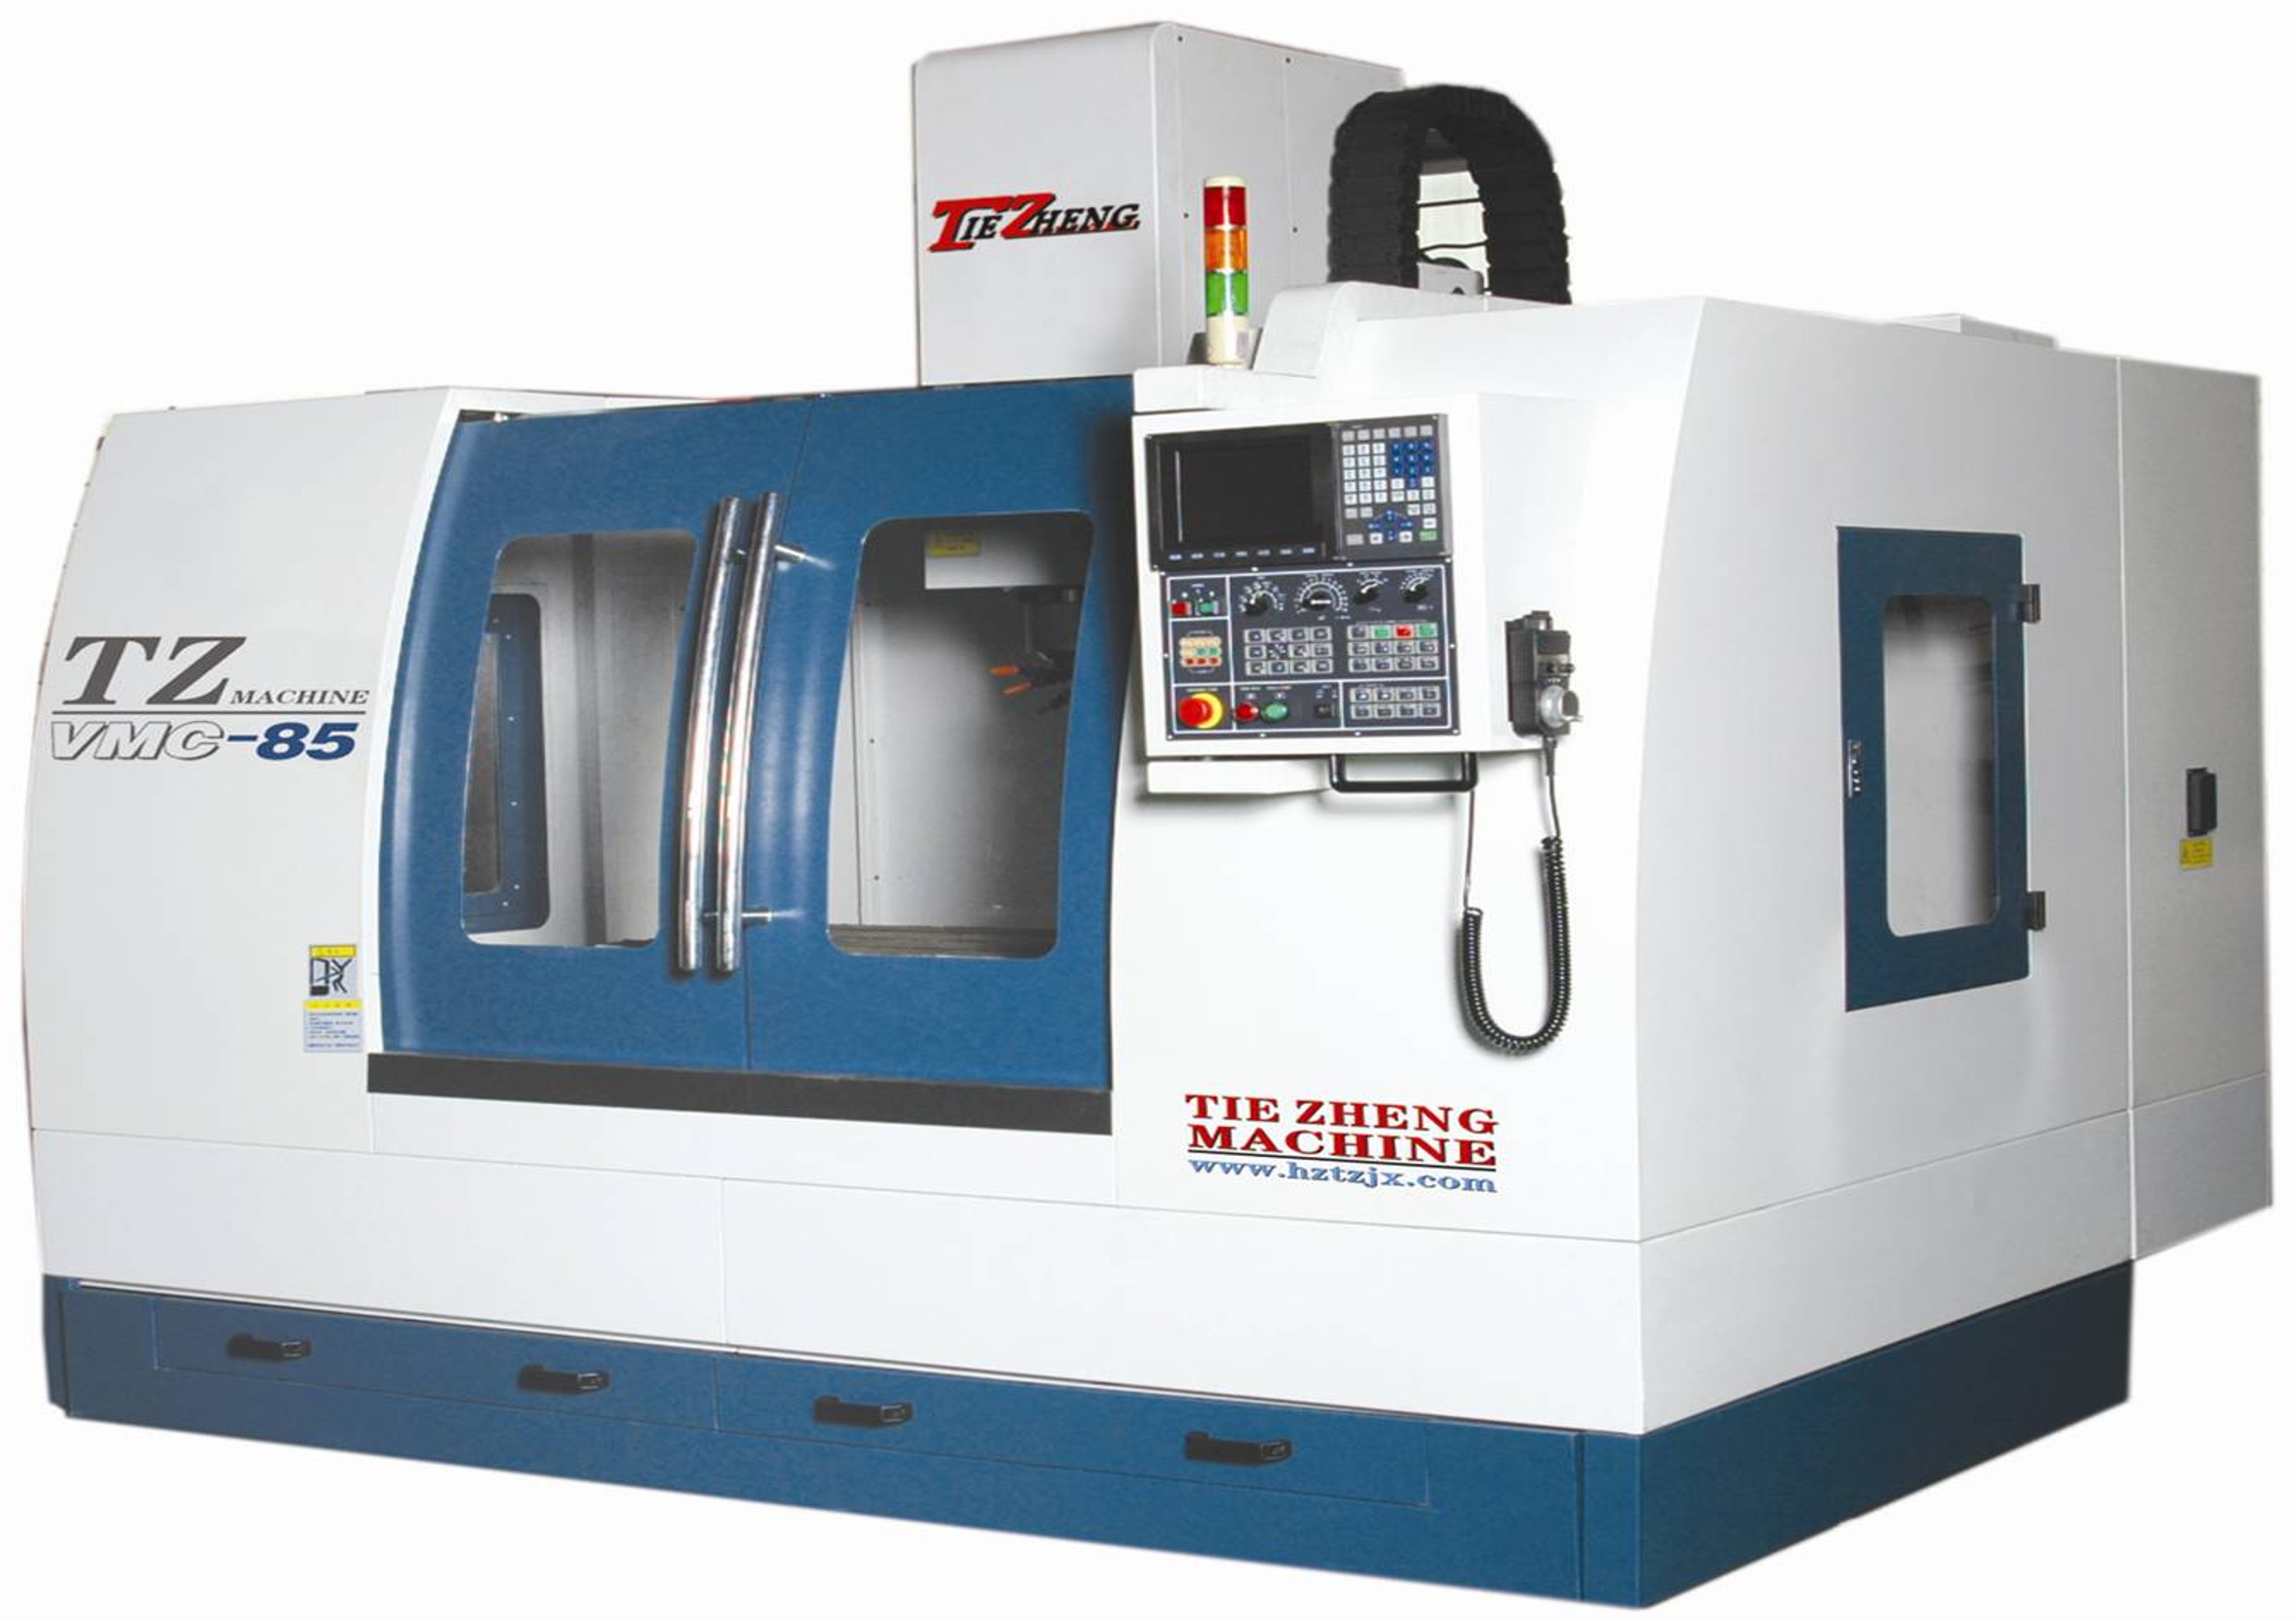 cnc machine meaning